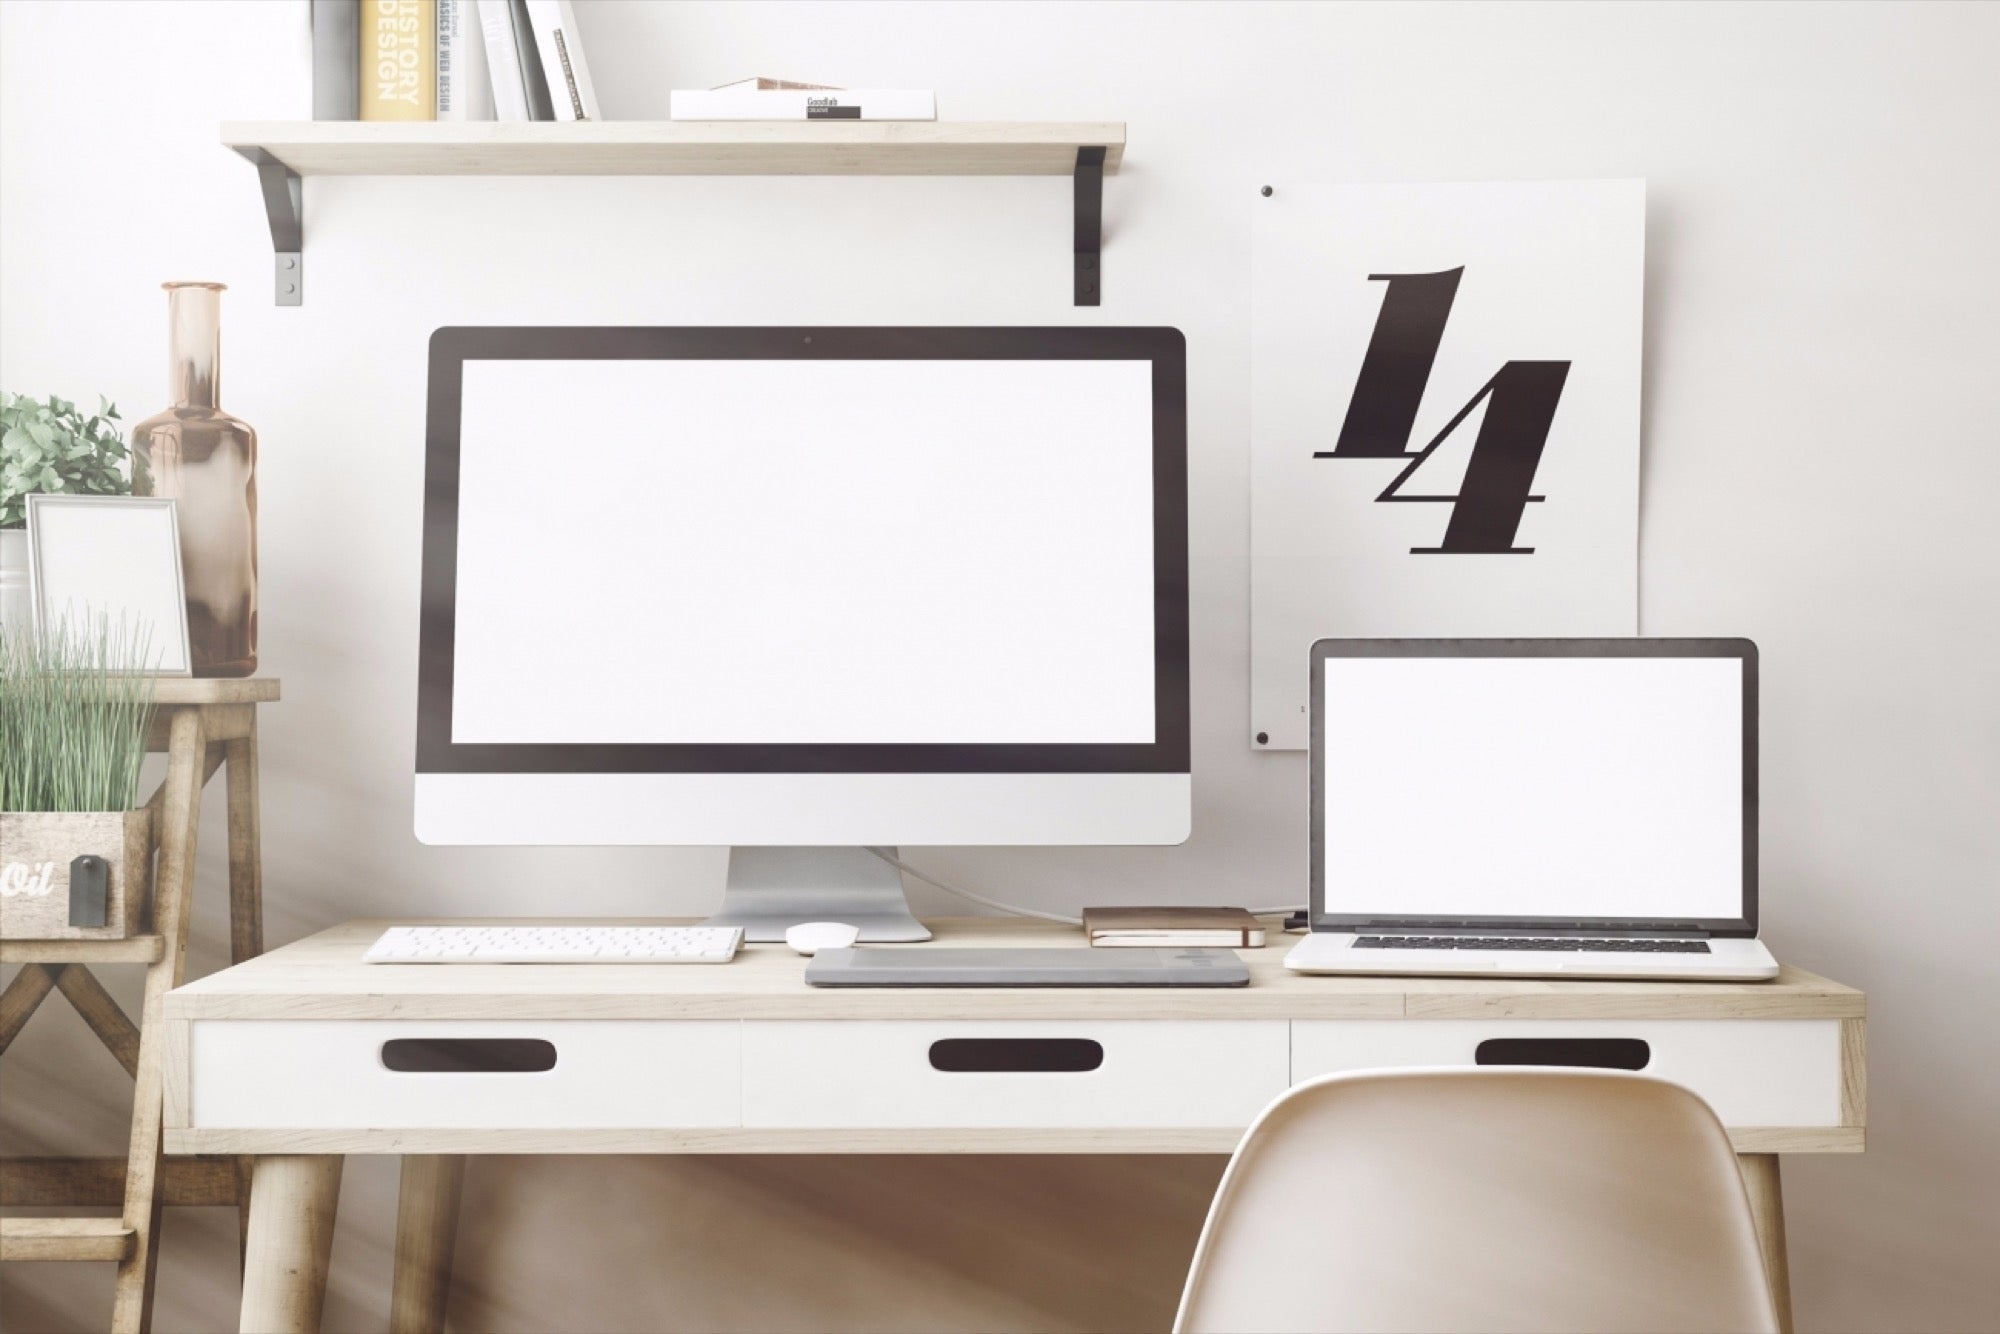 6 easy ways to make your workspace happy productive and organized